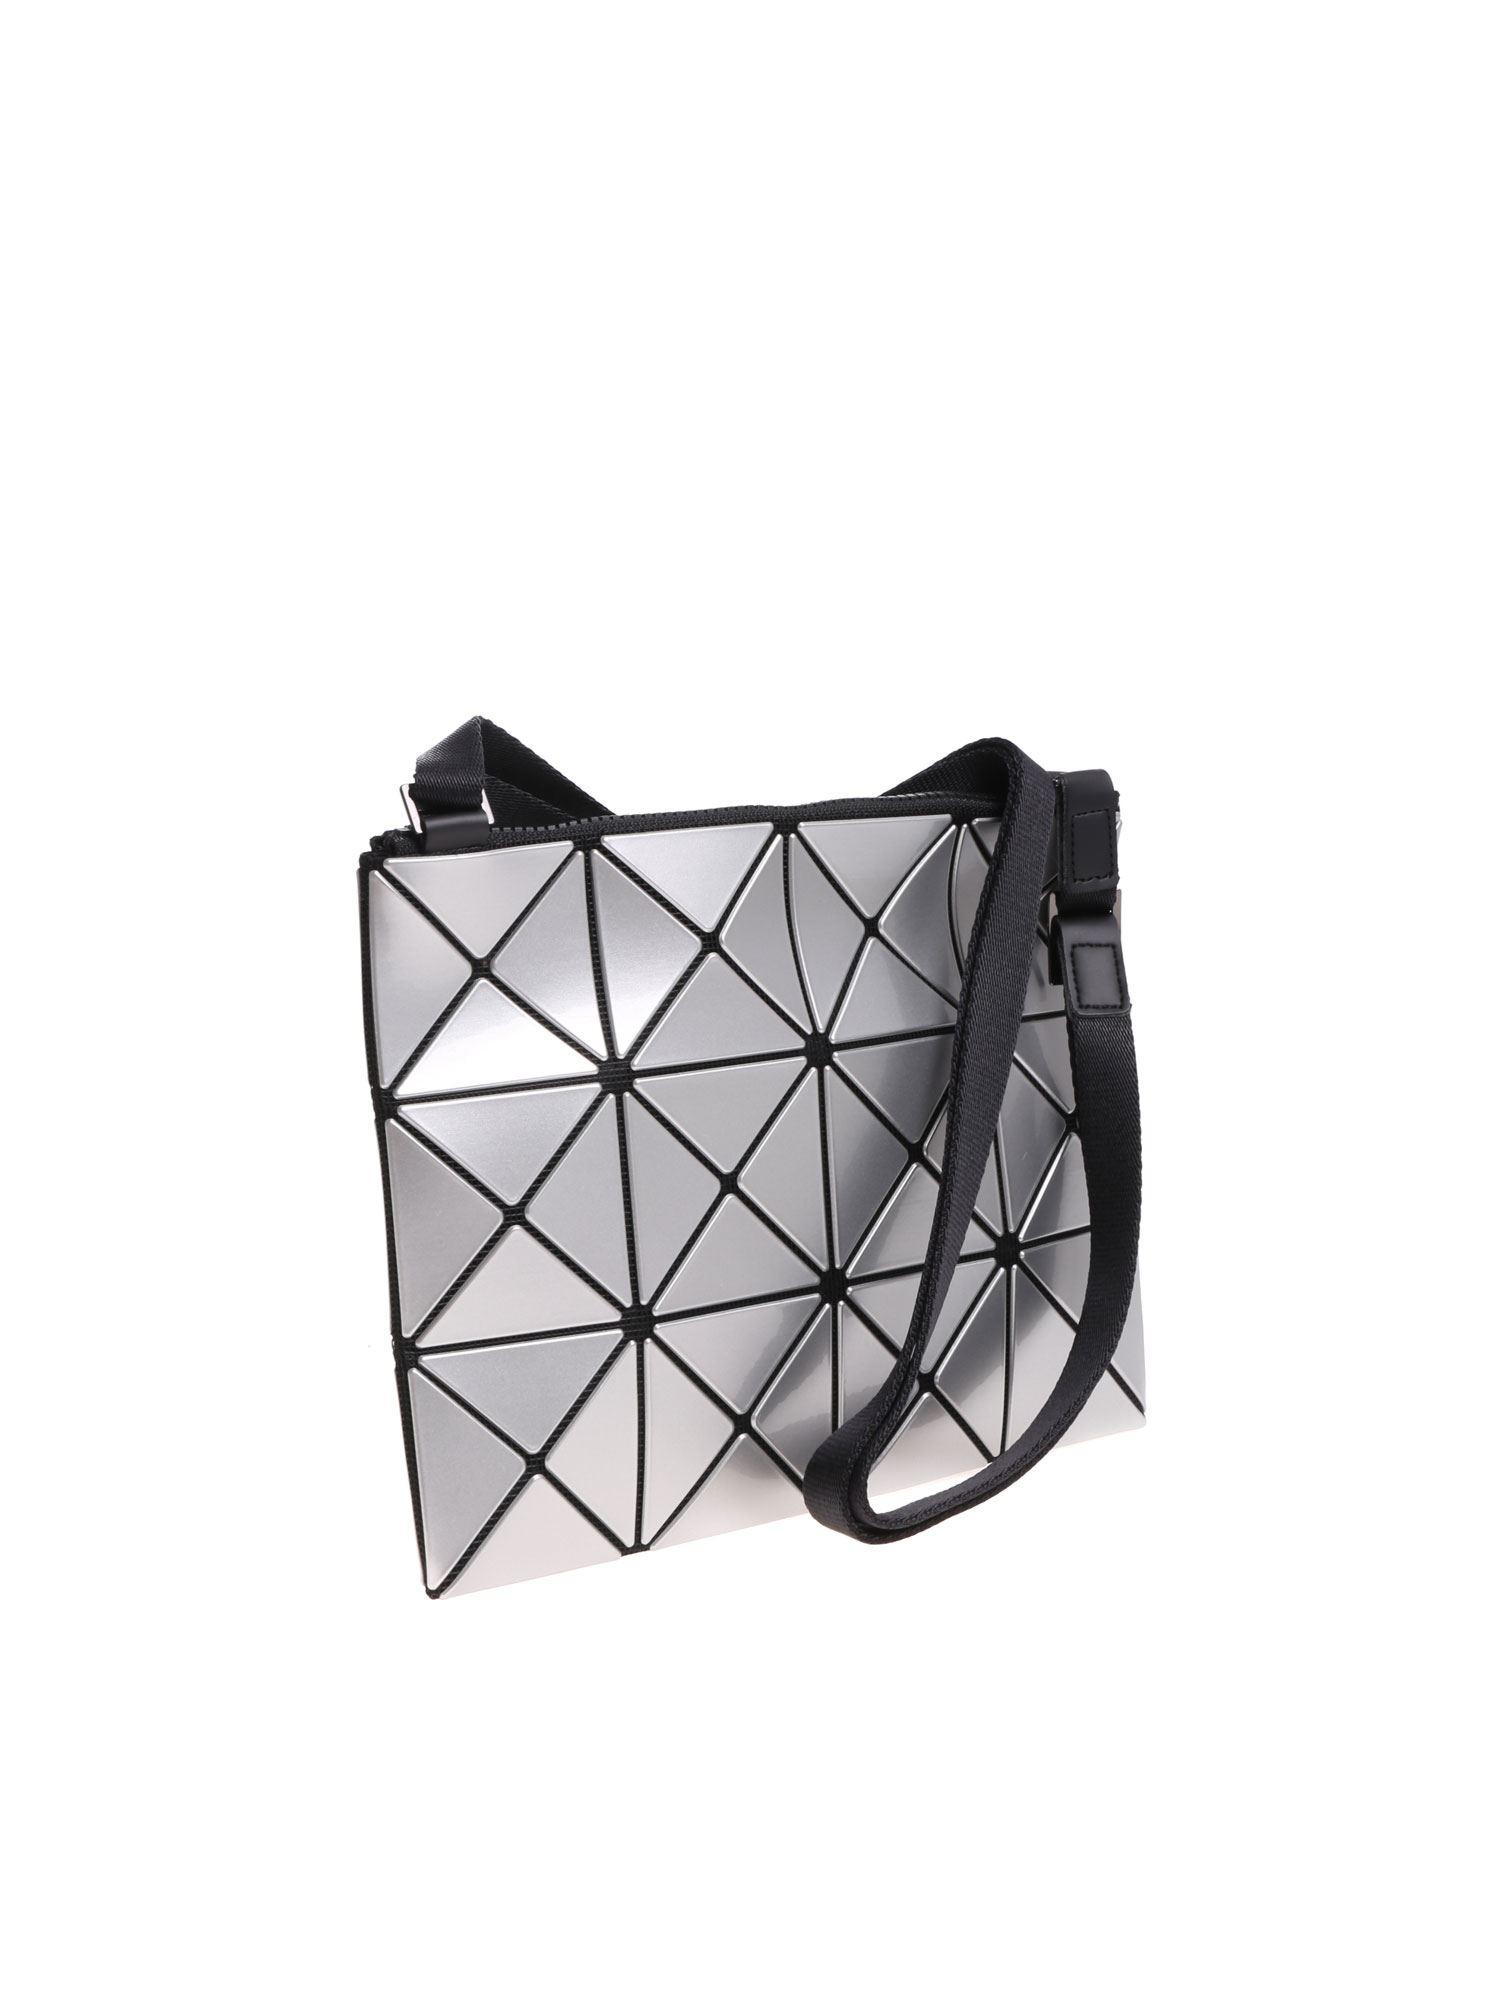 6c7b6b3e31 Lyst - Bao Bao Issey Miyake Soft Shoulder Bag With Square Motifs And  Triangles - Save 9%